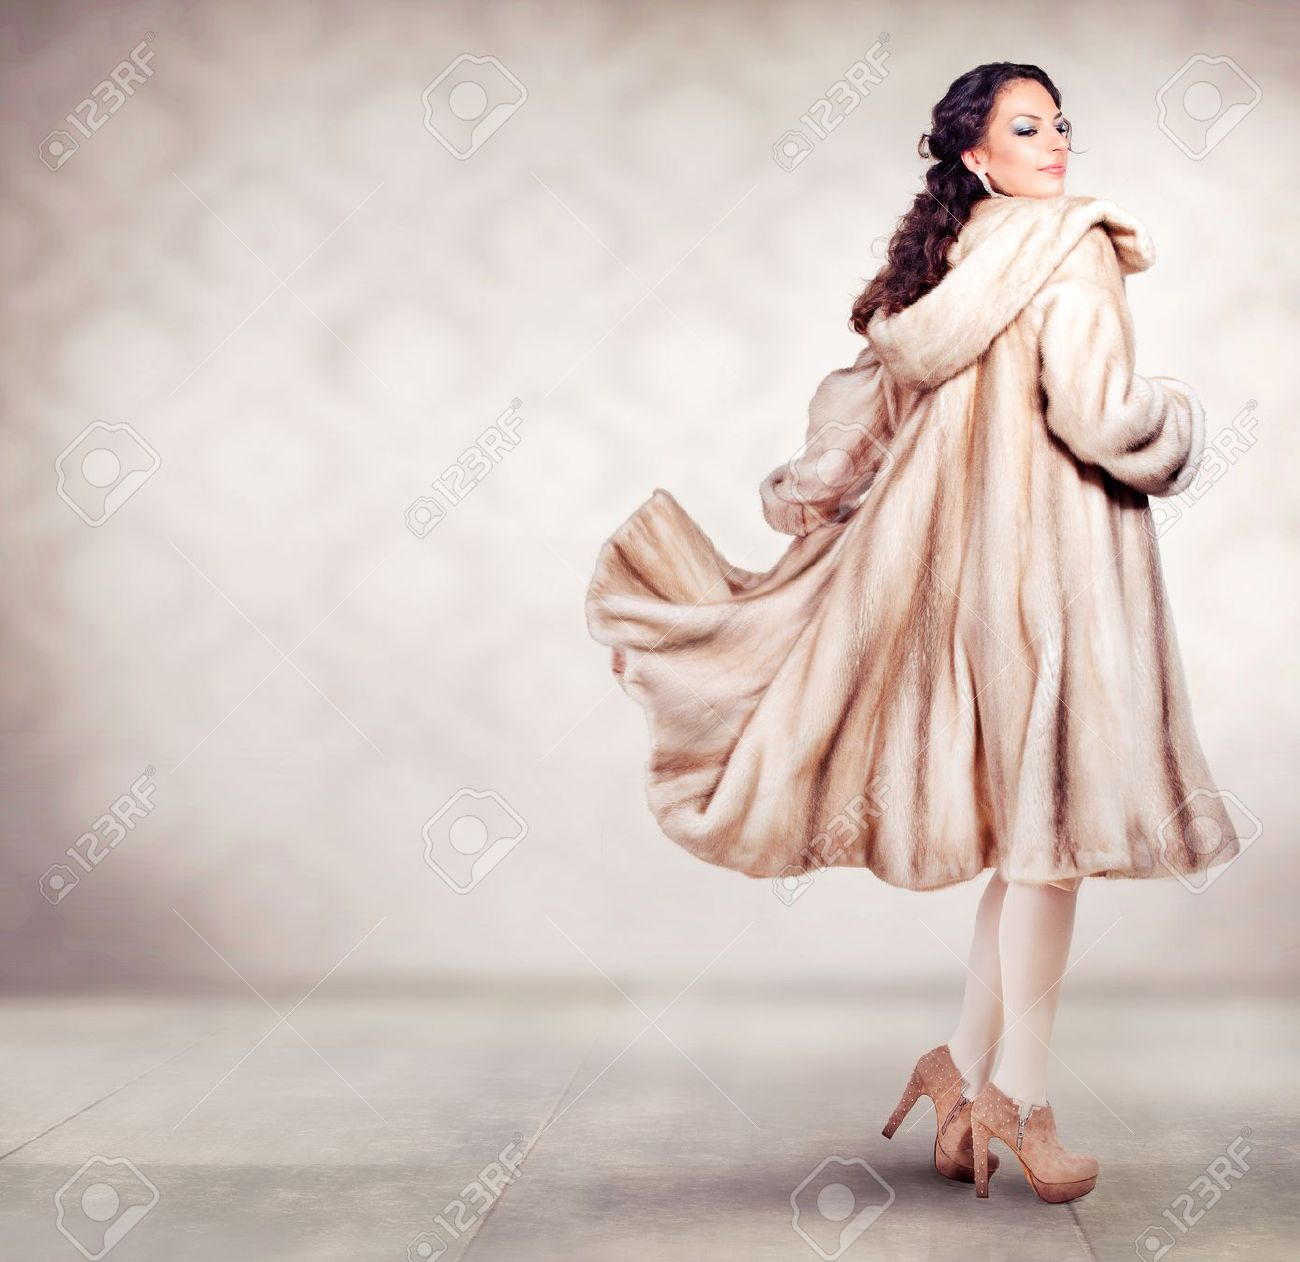 Fashion Beautiful Winter Woman In Luxury Fur Mink Coat Stock Photo ...